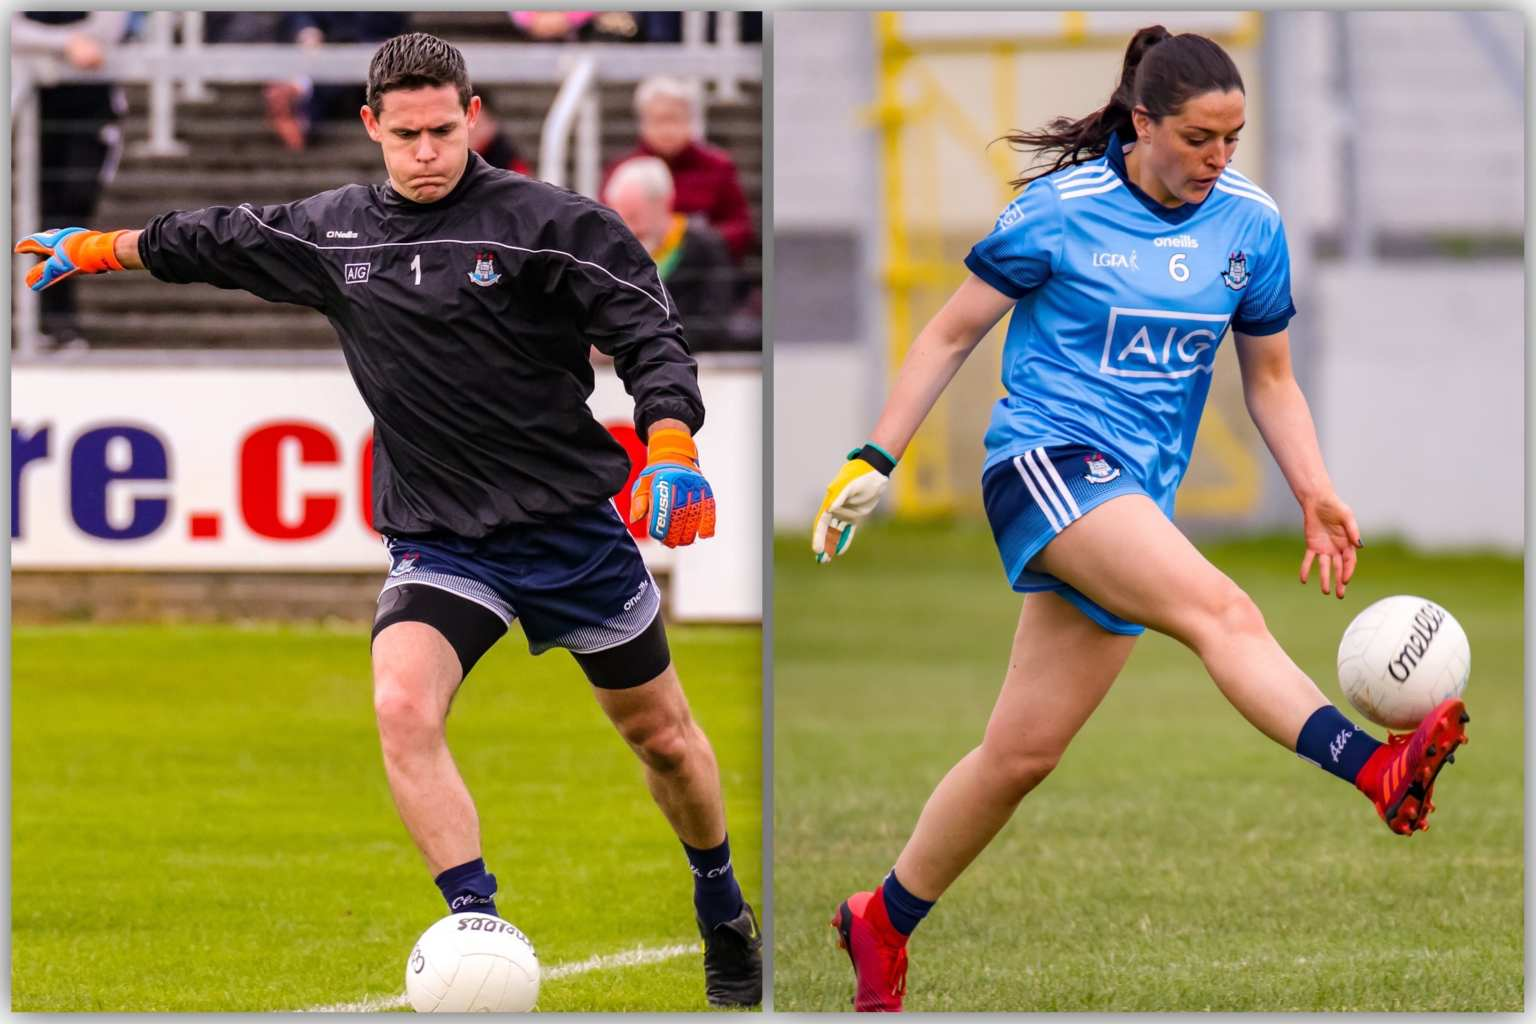 Dublin's Stephen Cluxton (L) and Sinéad Goldrick (R) are nominated for the RTÉ Sportsperson of the Year Award